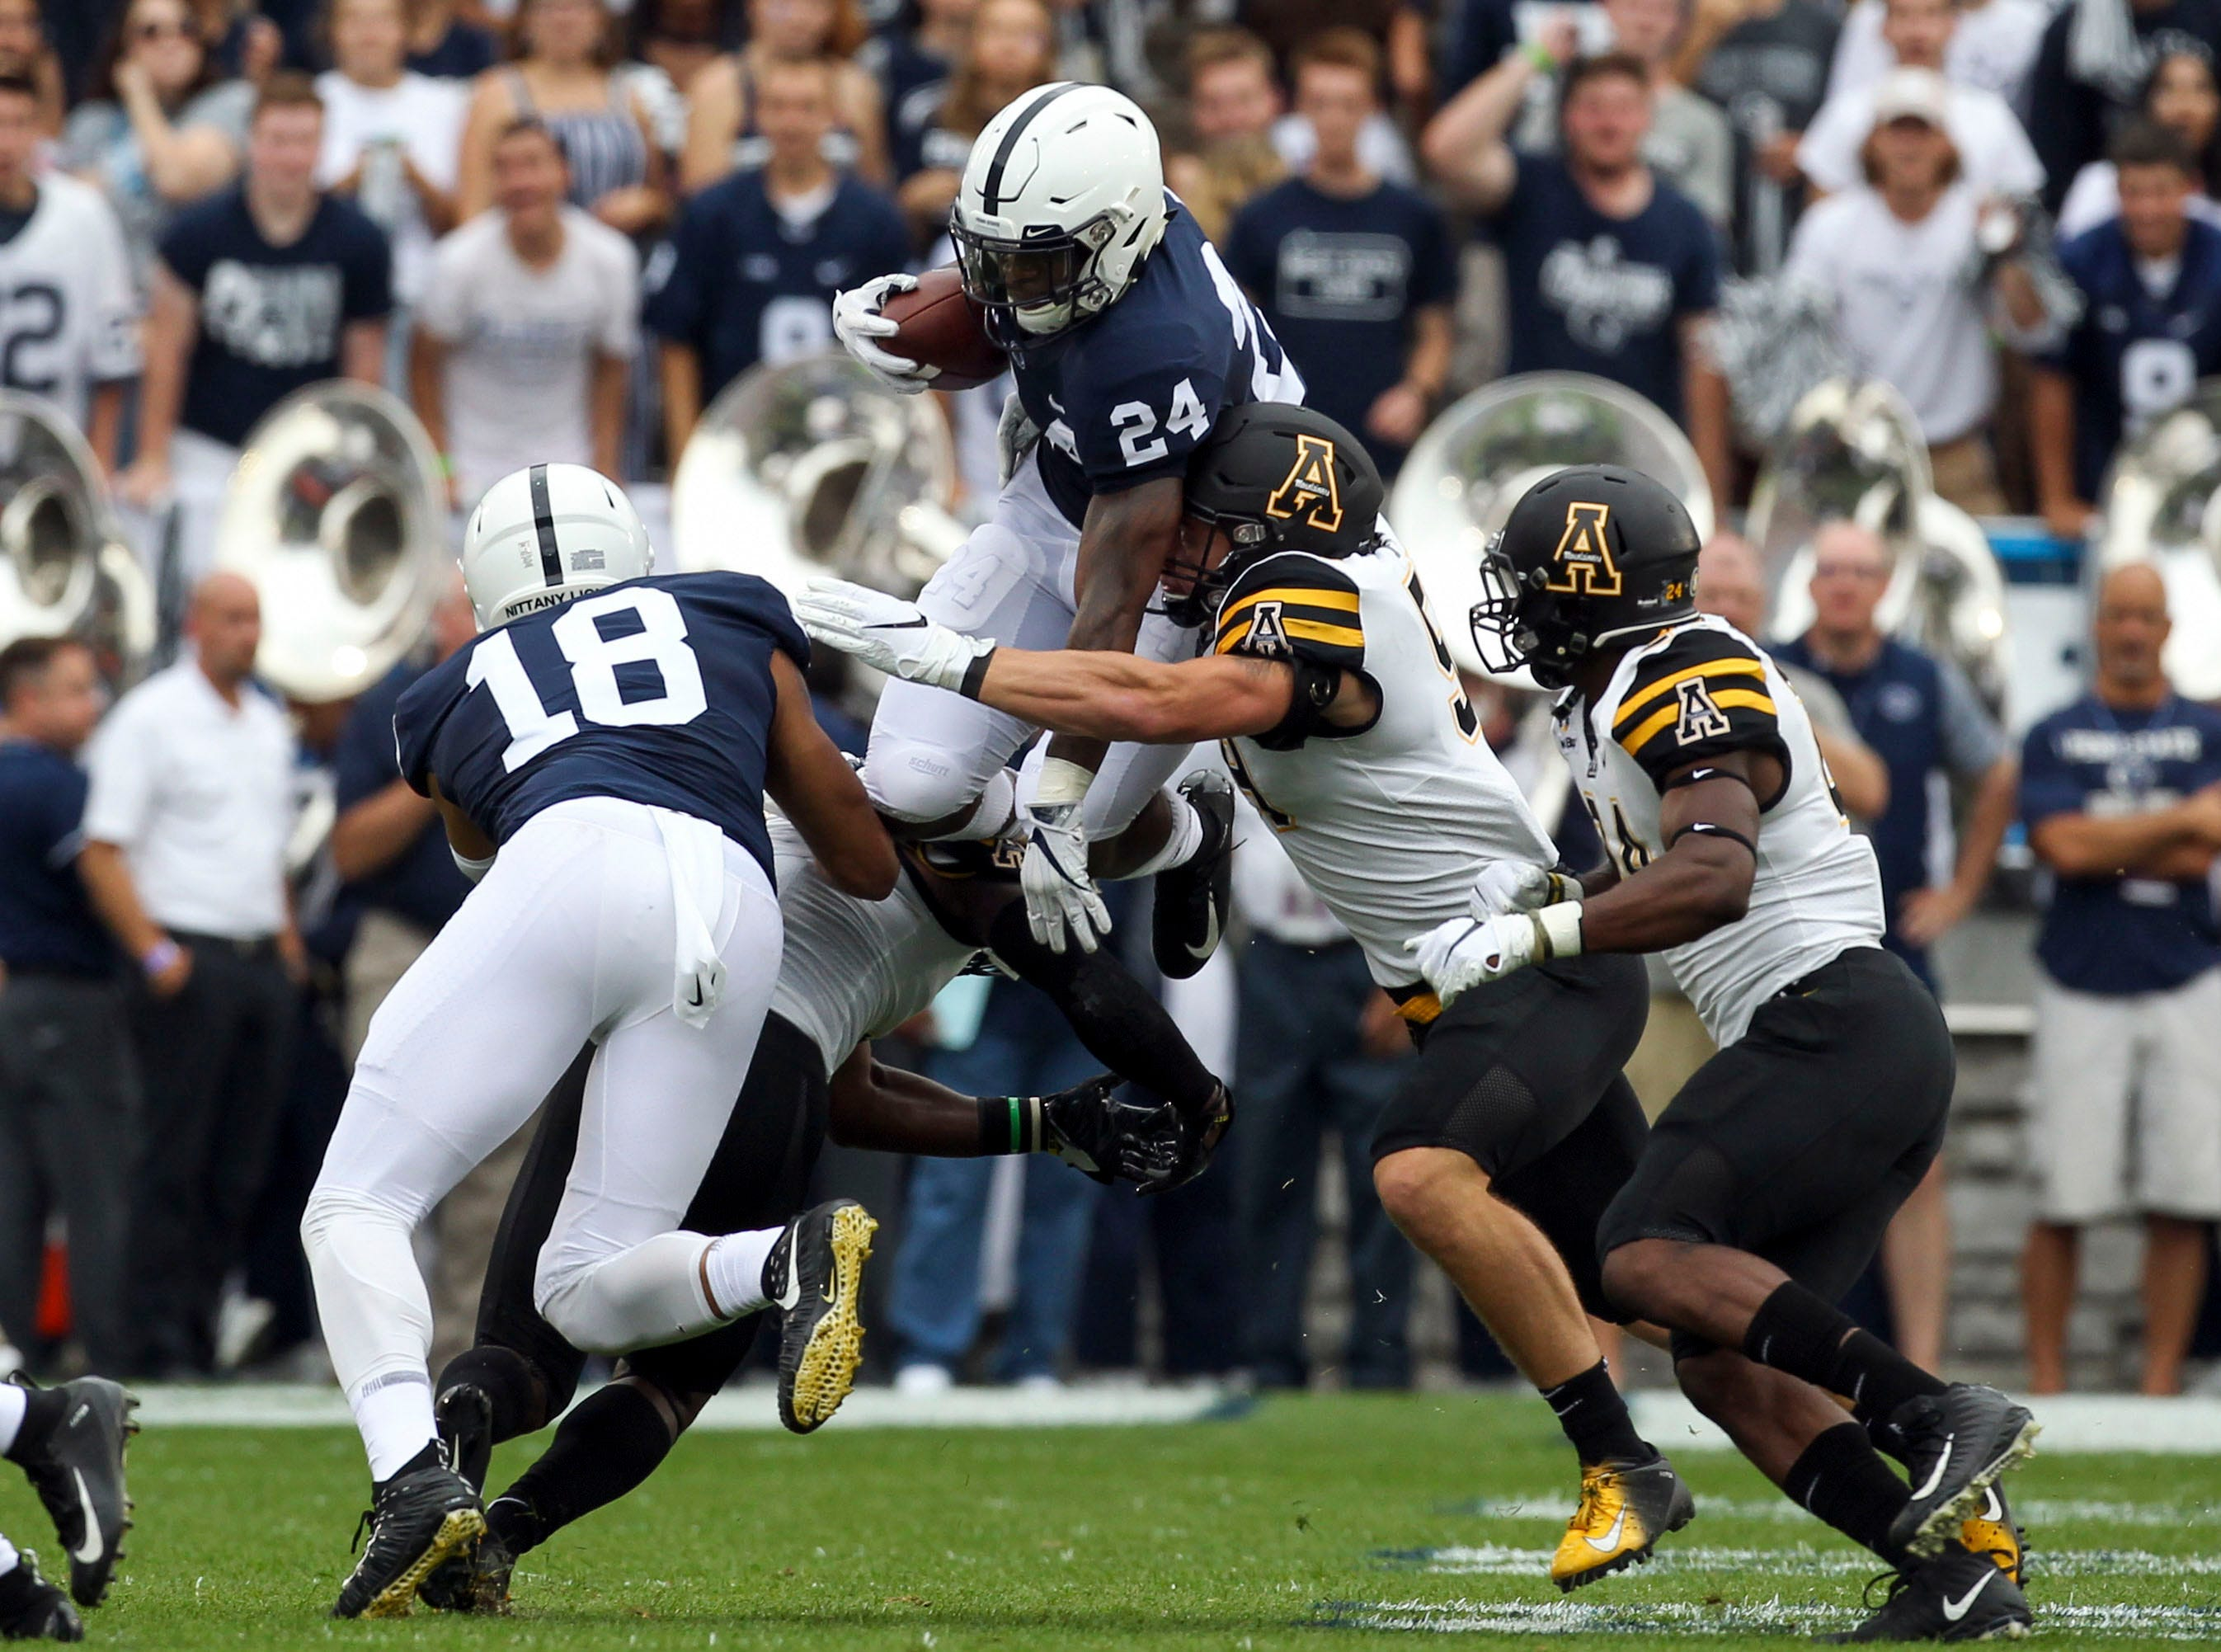 Penn State Nittany Lions running back Miles Sanders (24) jumps over a defender during the first quarter against the Appalachian State Mountaineers at Beaver Stadium.